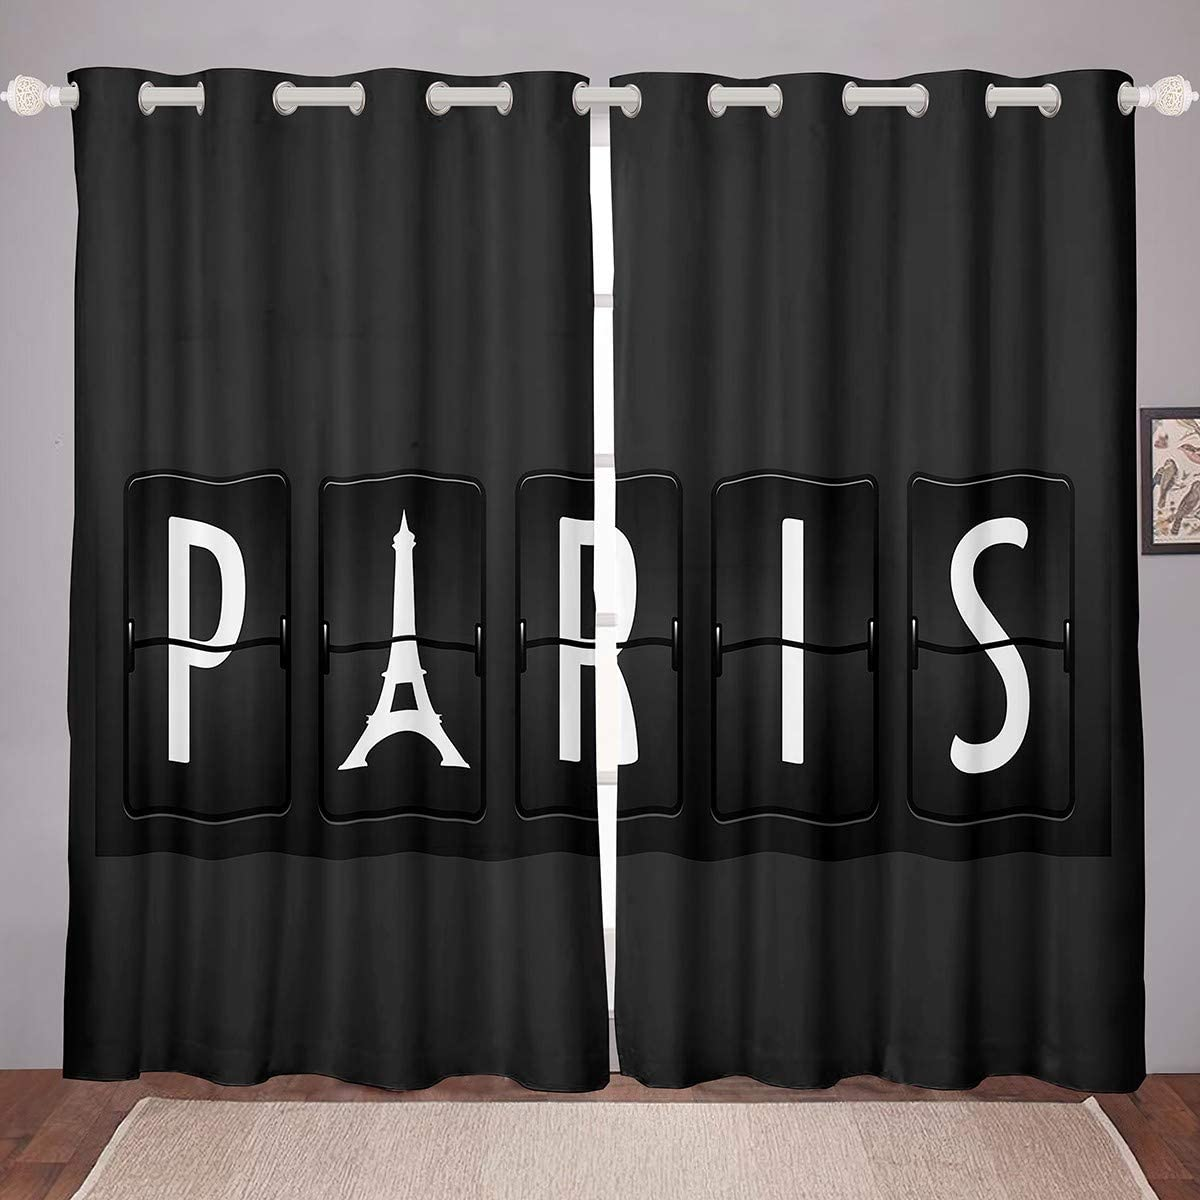 Eiffel Tower Curtains Chic Paris Theme Window Curtains for Bedroom Living Room for Kids Boys Girls Paris Cityscape Window Drapes White Black Modern Decor Window Treatments,38 X 45 Inches,2 Panels…